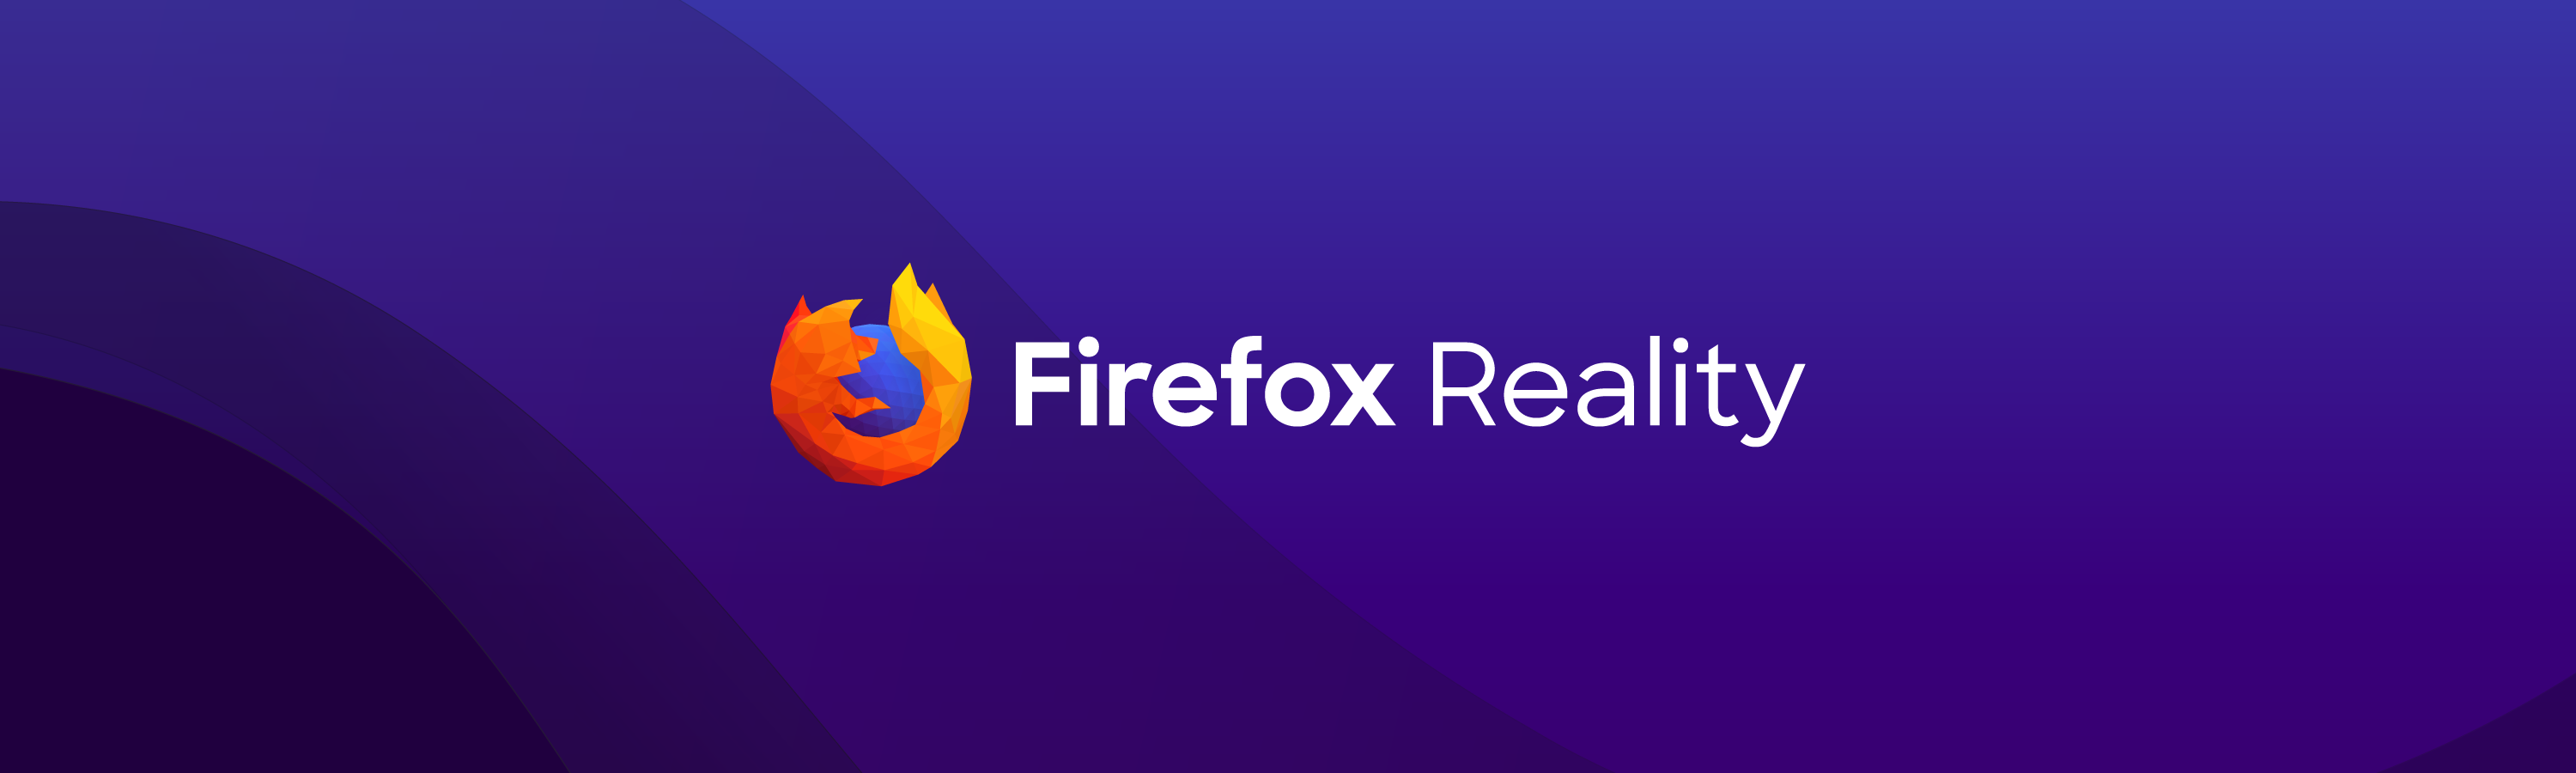 GitHub - MozillaReality/FirefoxReality: A fast and secure browser